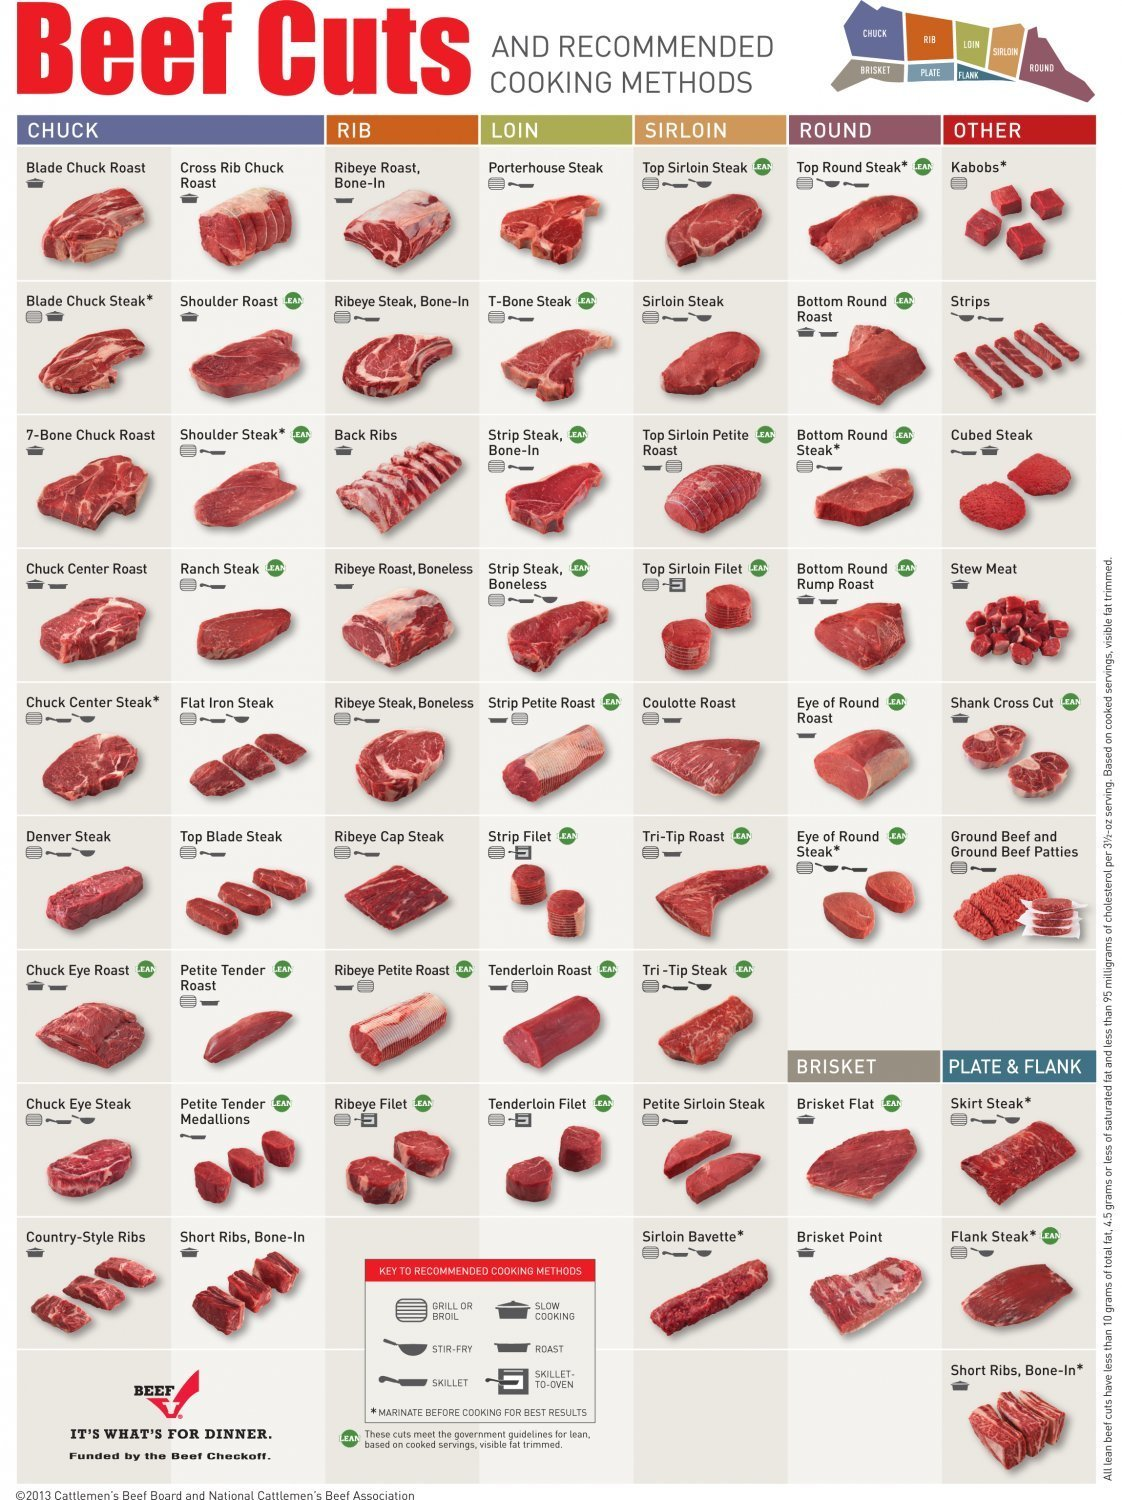 Beef Cuts Recommended Cooking Methods Chart  18x28 inches Poster Print